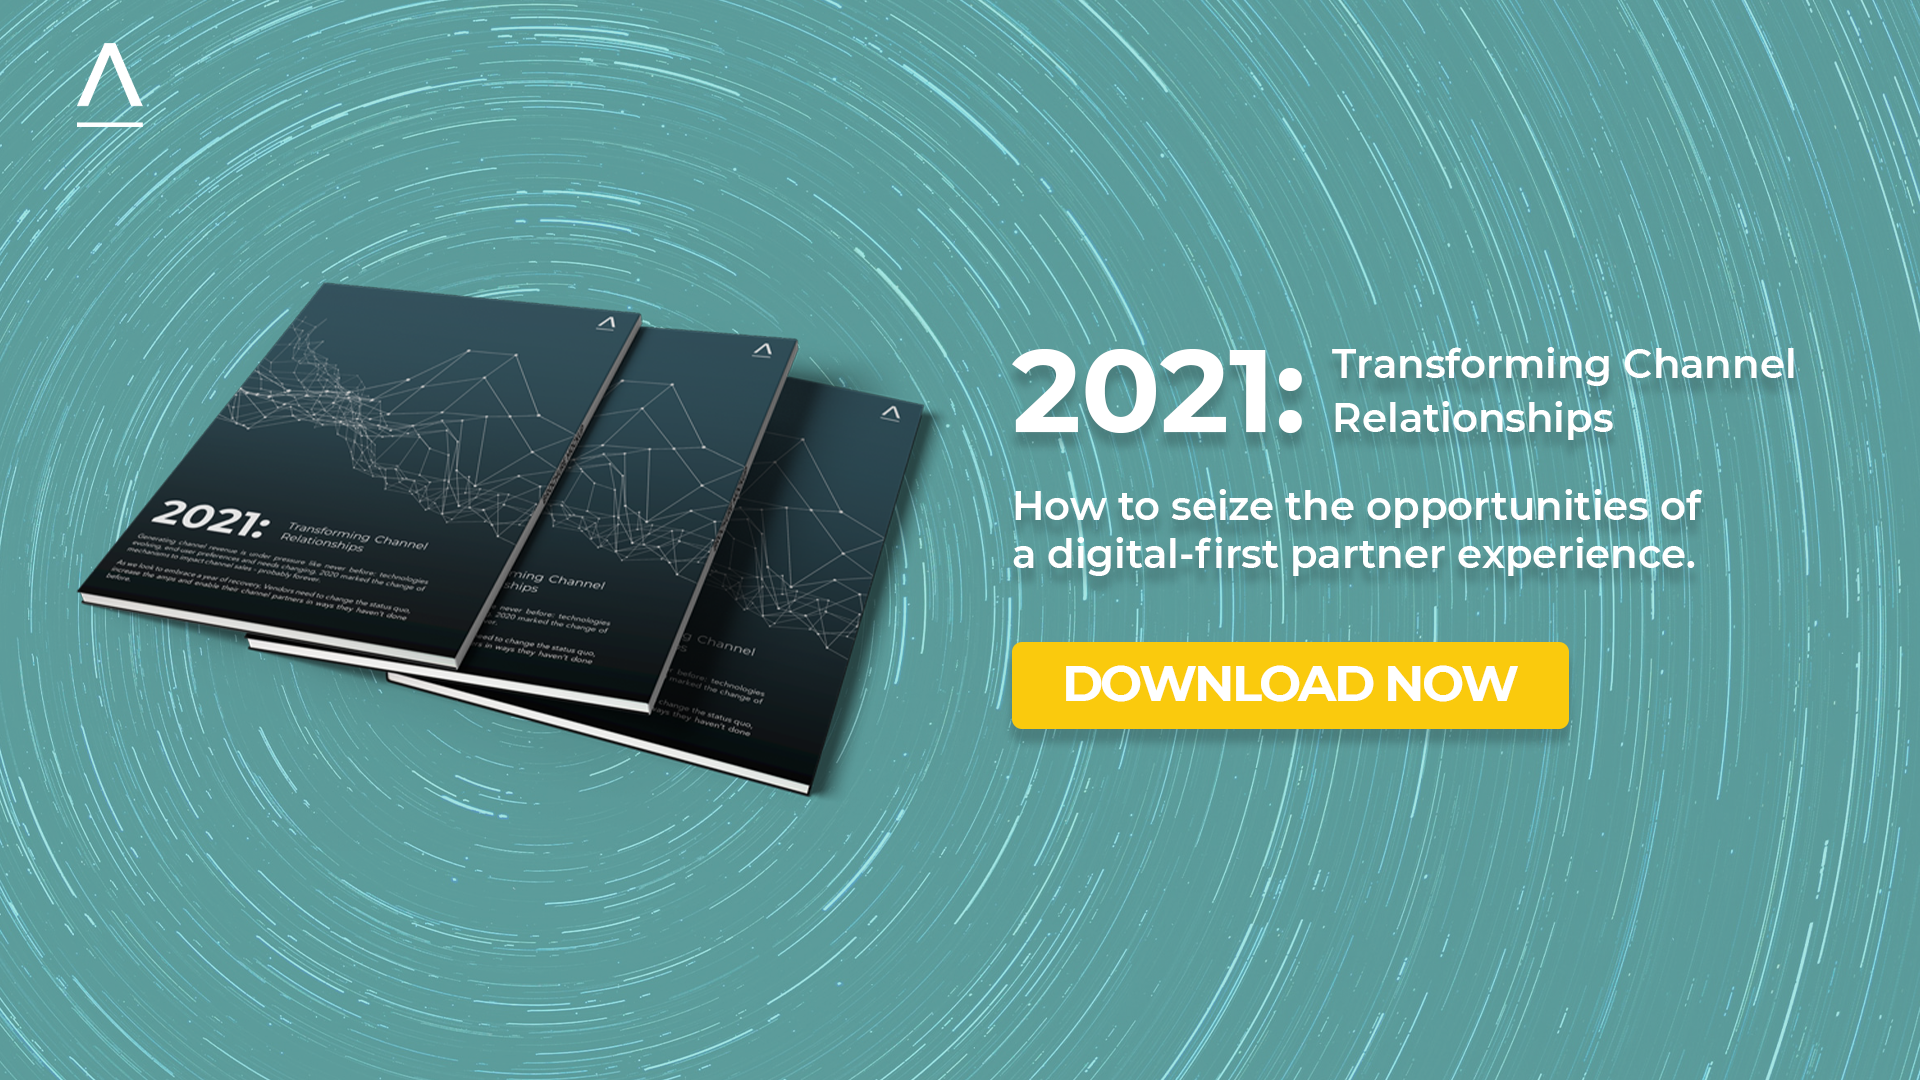 Transforming channel relationships insights report ad download